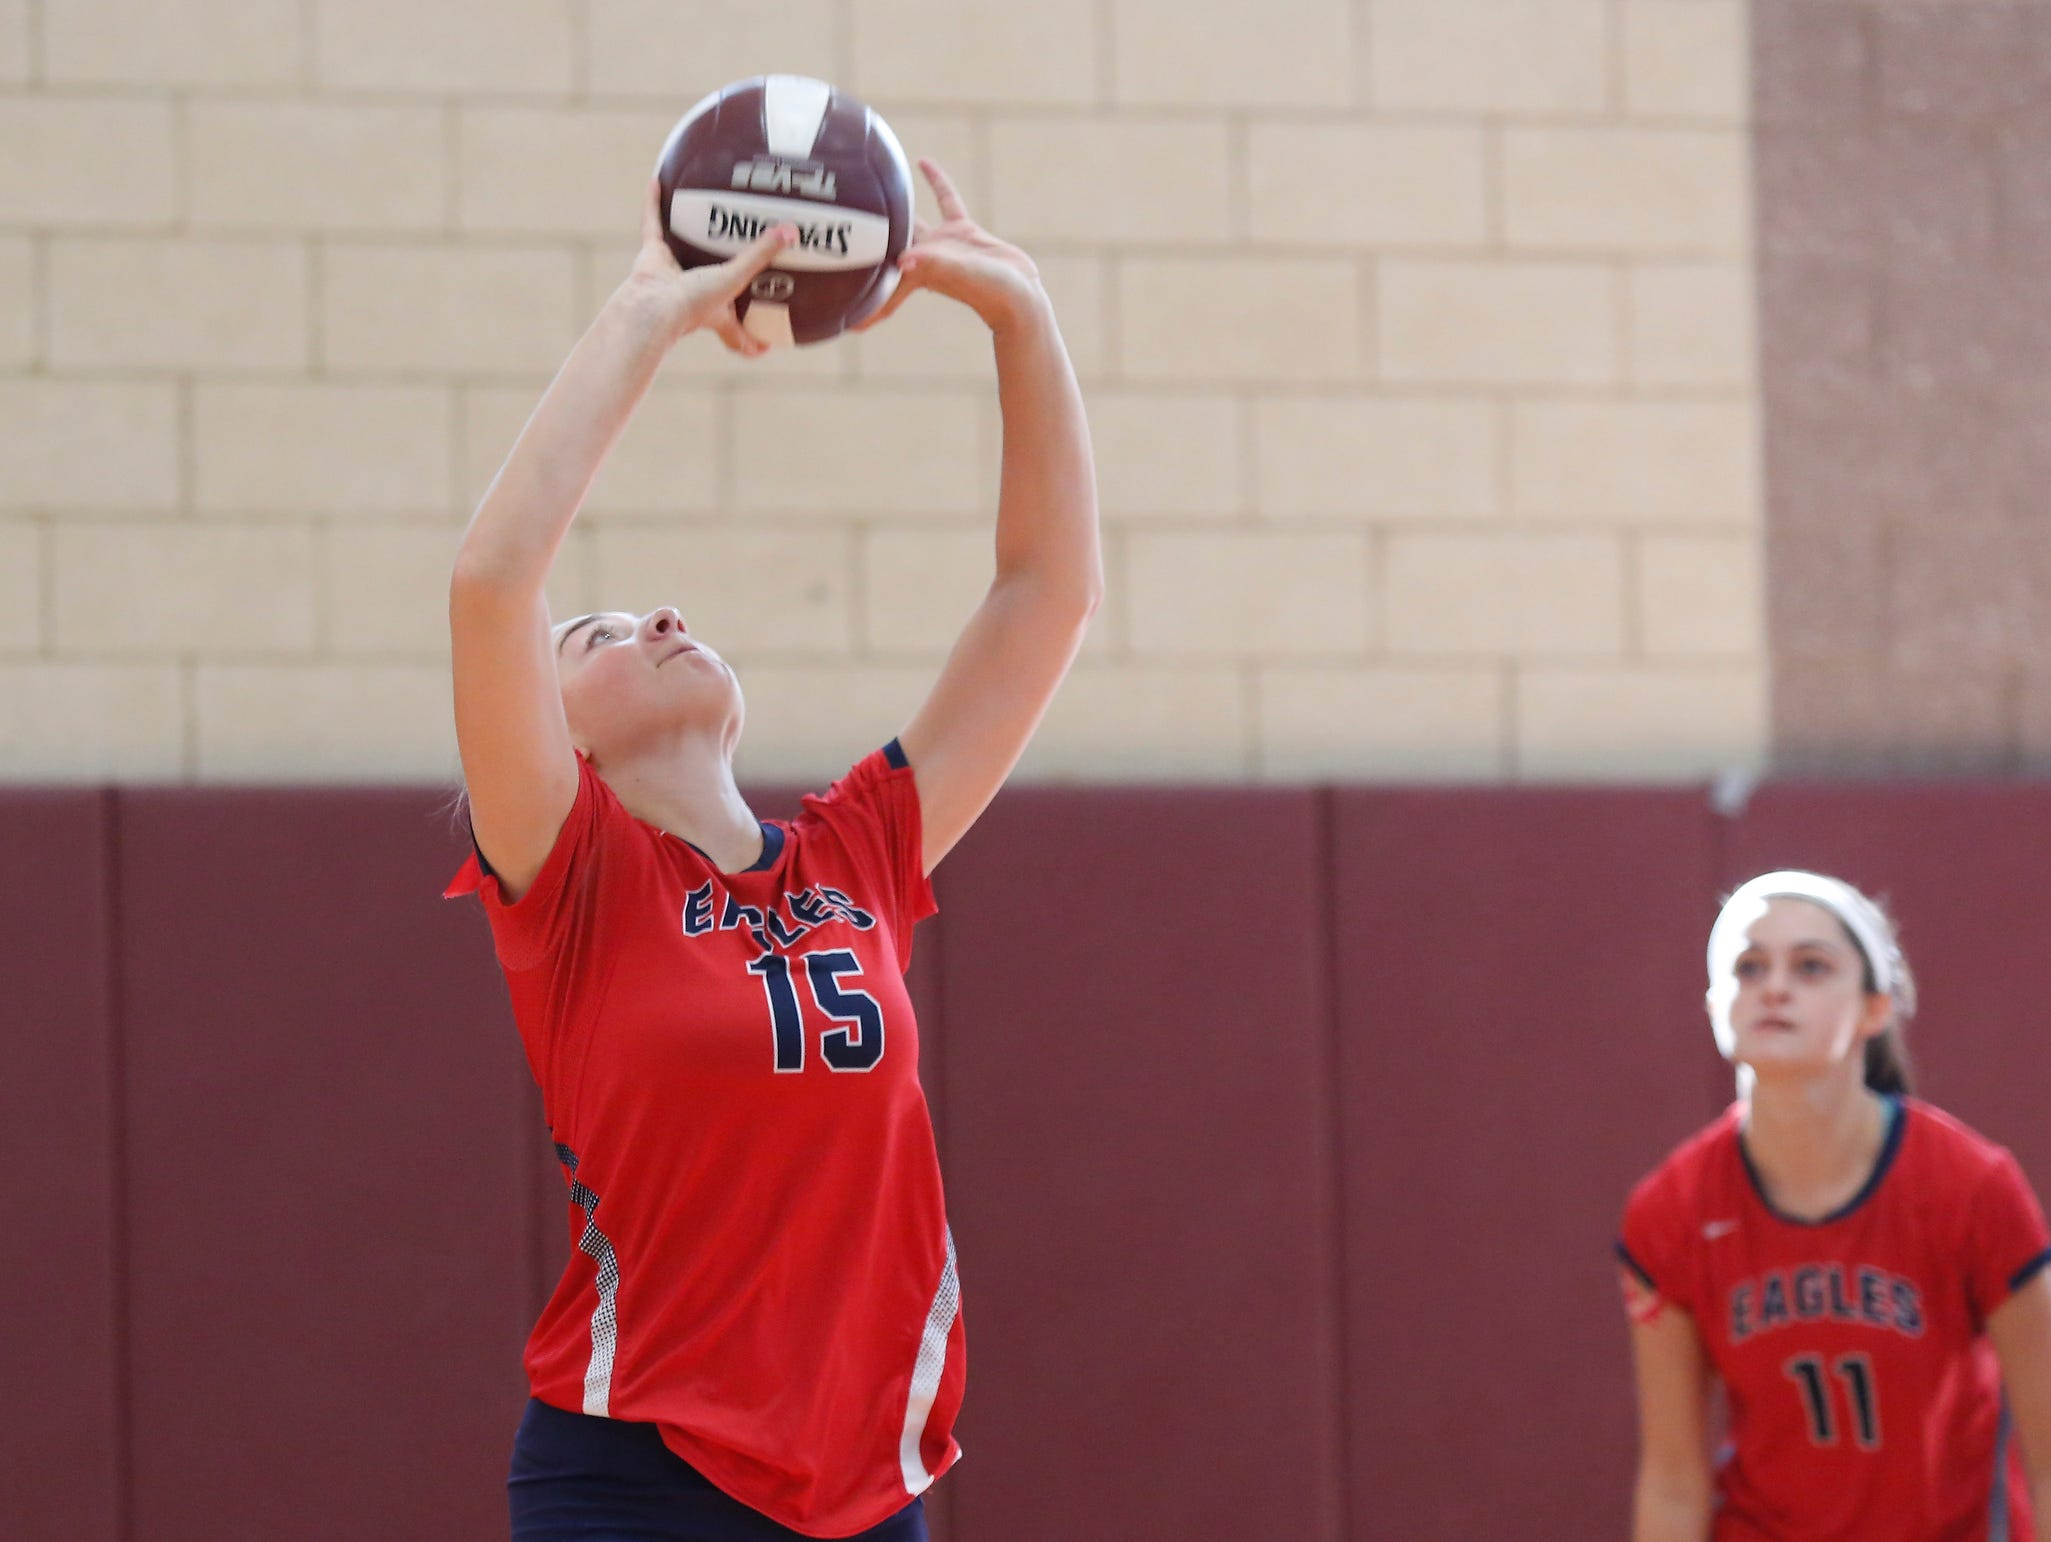 Eastchester in action during the Scarsdale volleyball tournament at Scarsdale High School on Saturday, September 17, 2016.